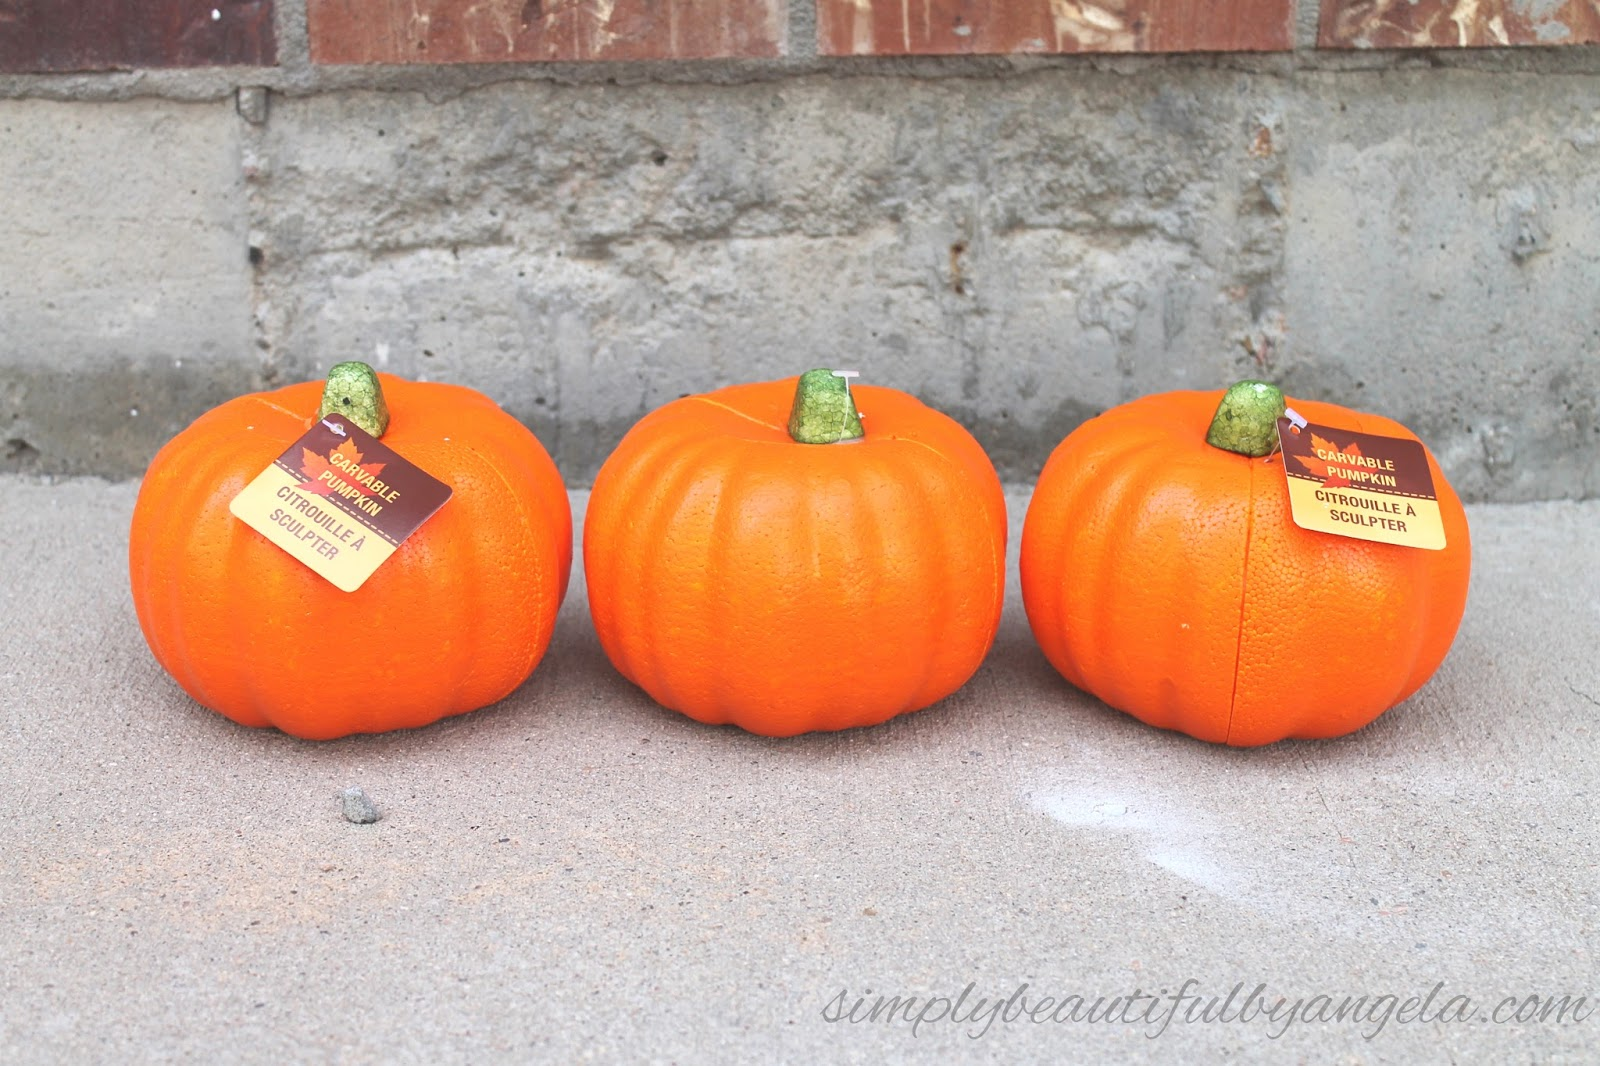 How to store pumpkins - Have You All Seen These Pumpkins At The Dollar Store I Always Just Pass Them By Because Let S Be Real They Aren T The Most Beautiful Or Realistic Looking